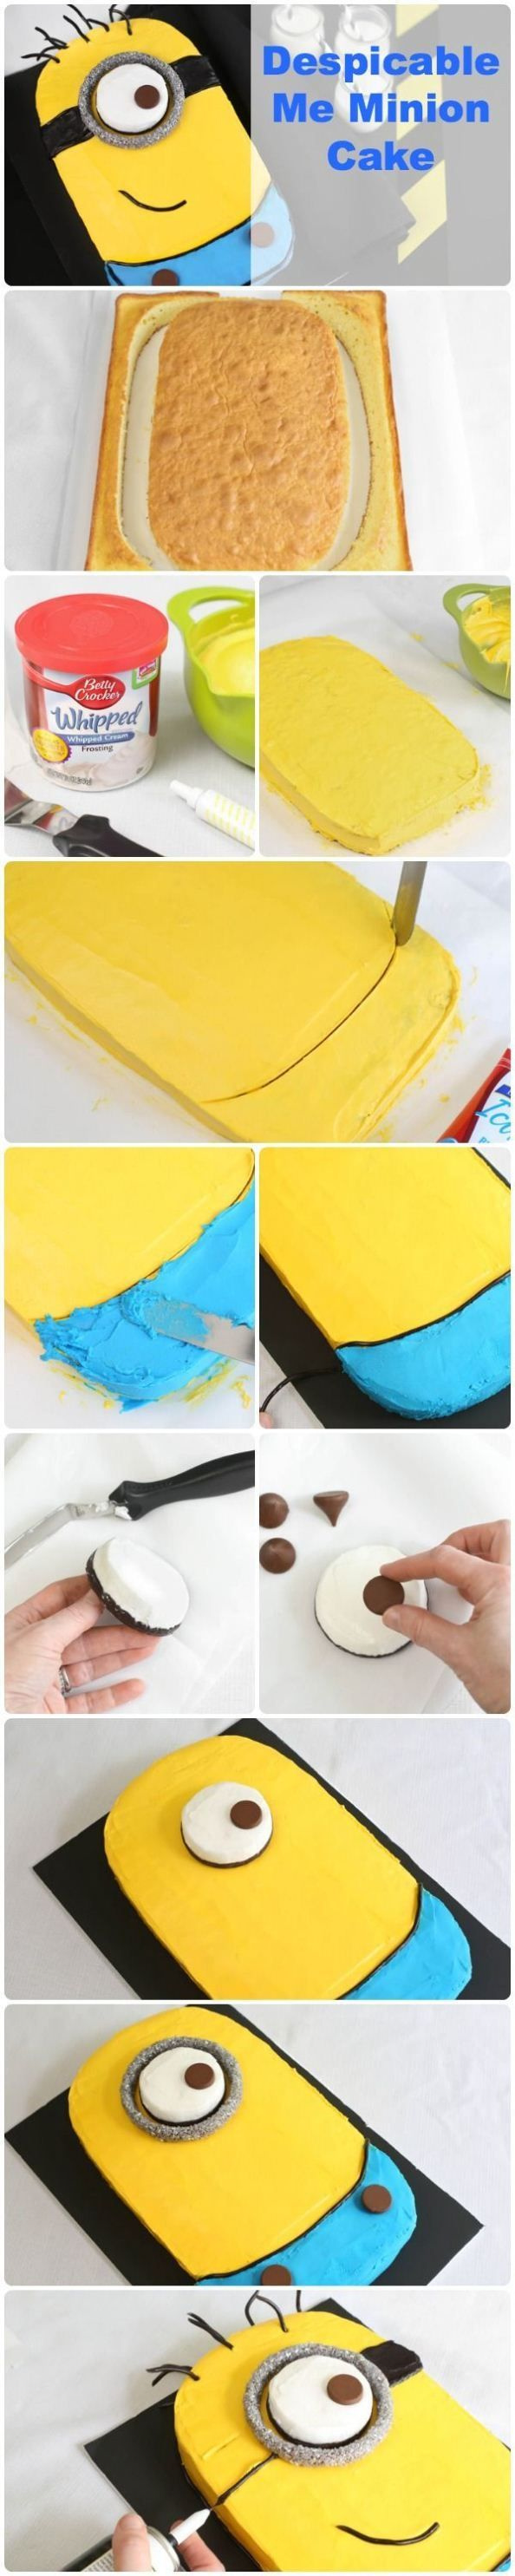 Despicable Me Minion Sheet Cake ( http://www.bettycrocker.com/tips/tipslibrary/baking-tips/despicable-me-minion-sheet-cake )